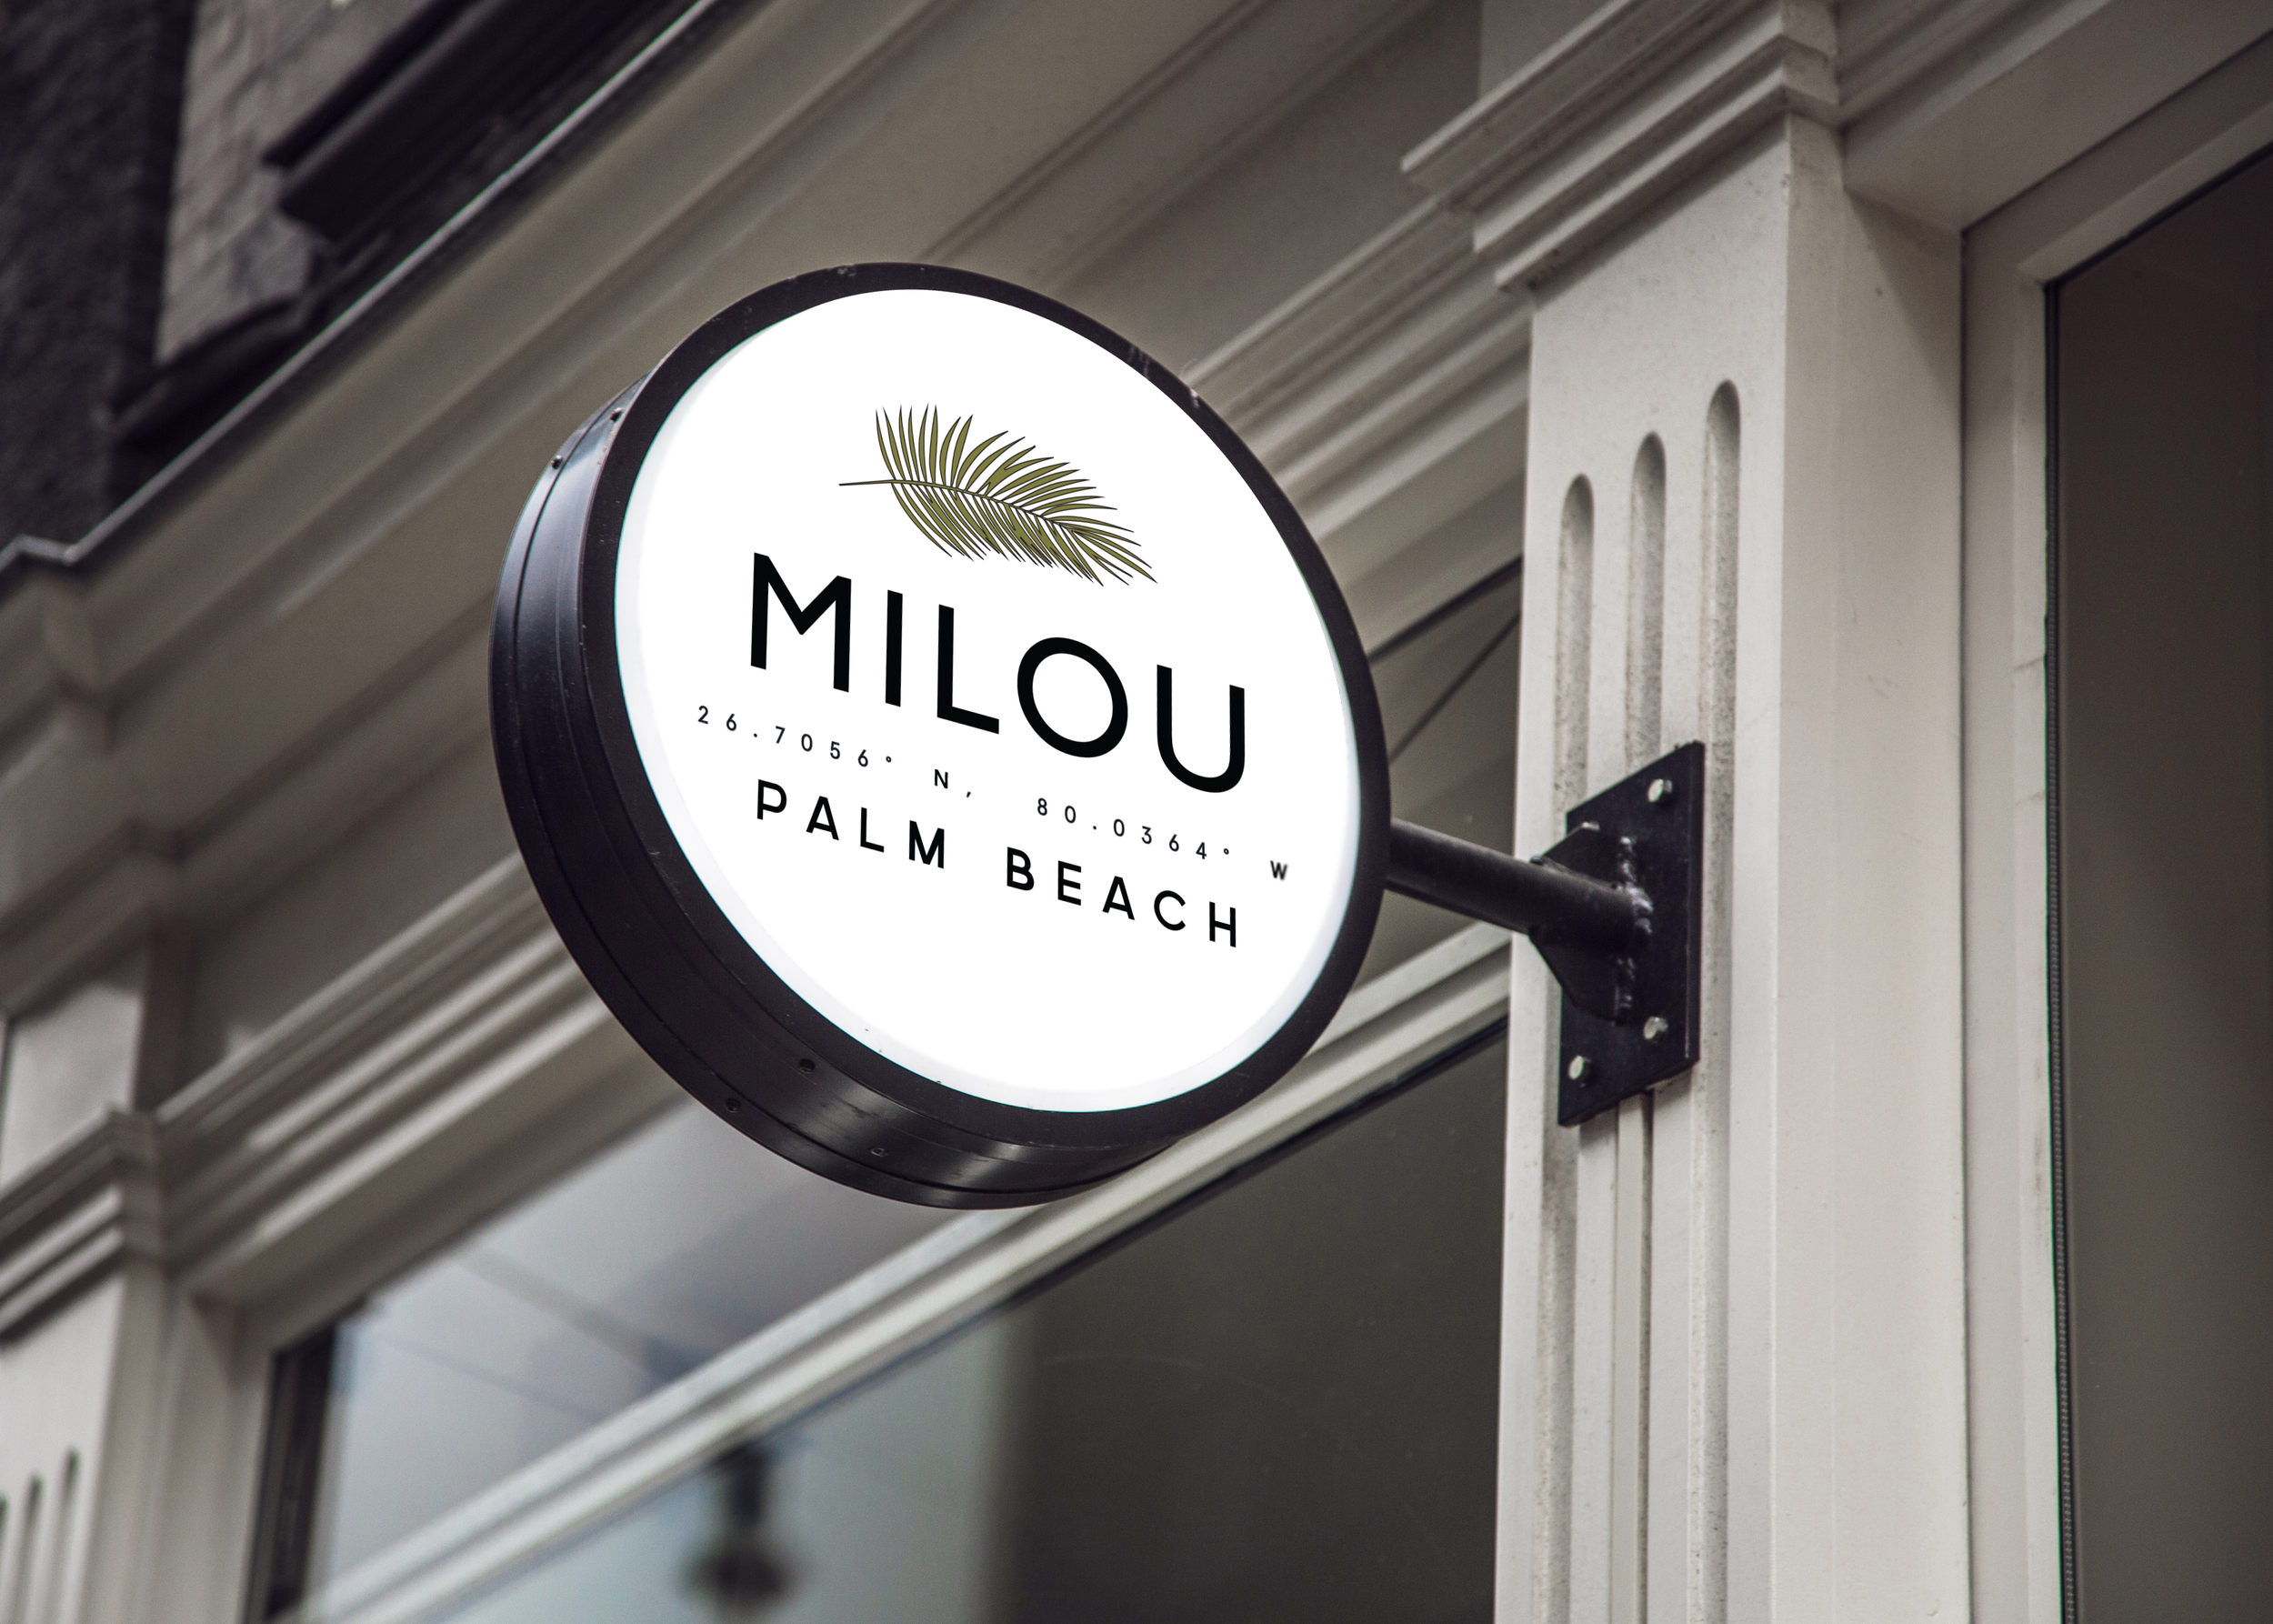 milou palm beach, modern clothing boutique located in palm beach, florida, 2016